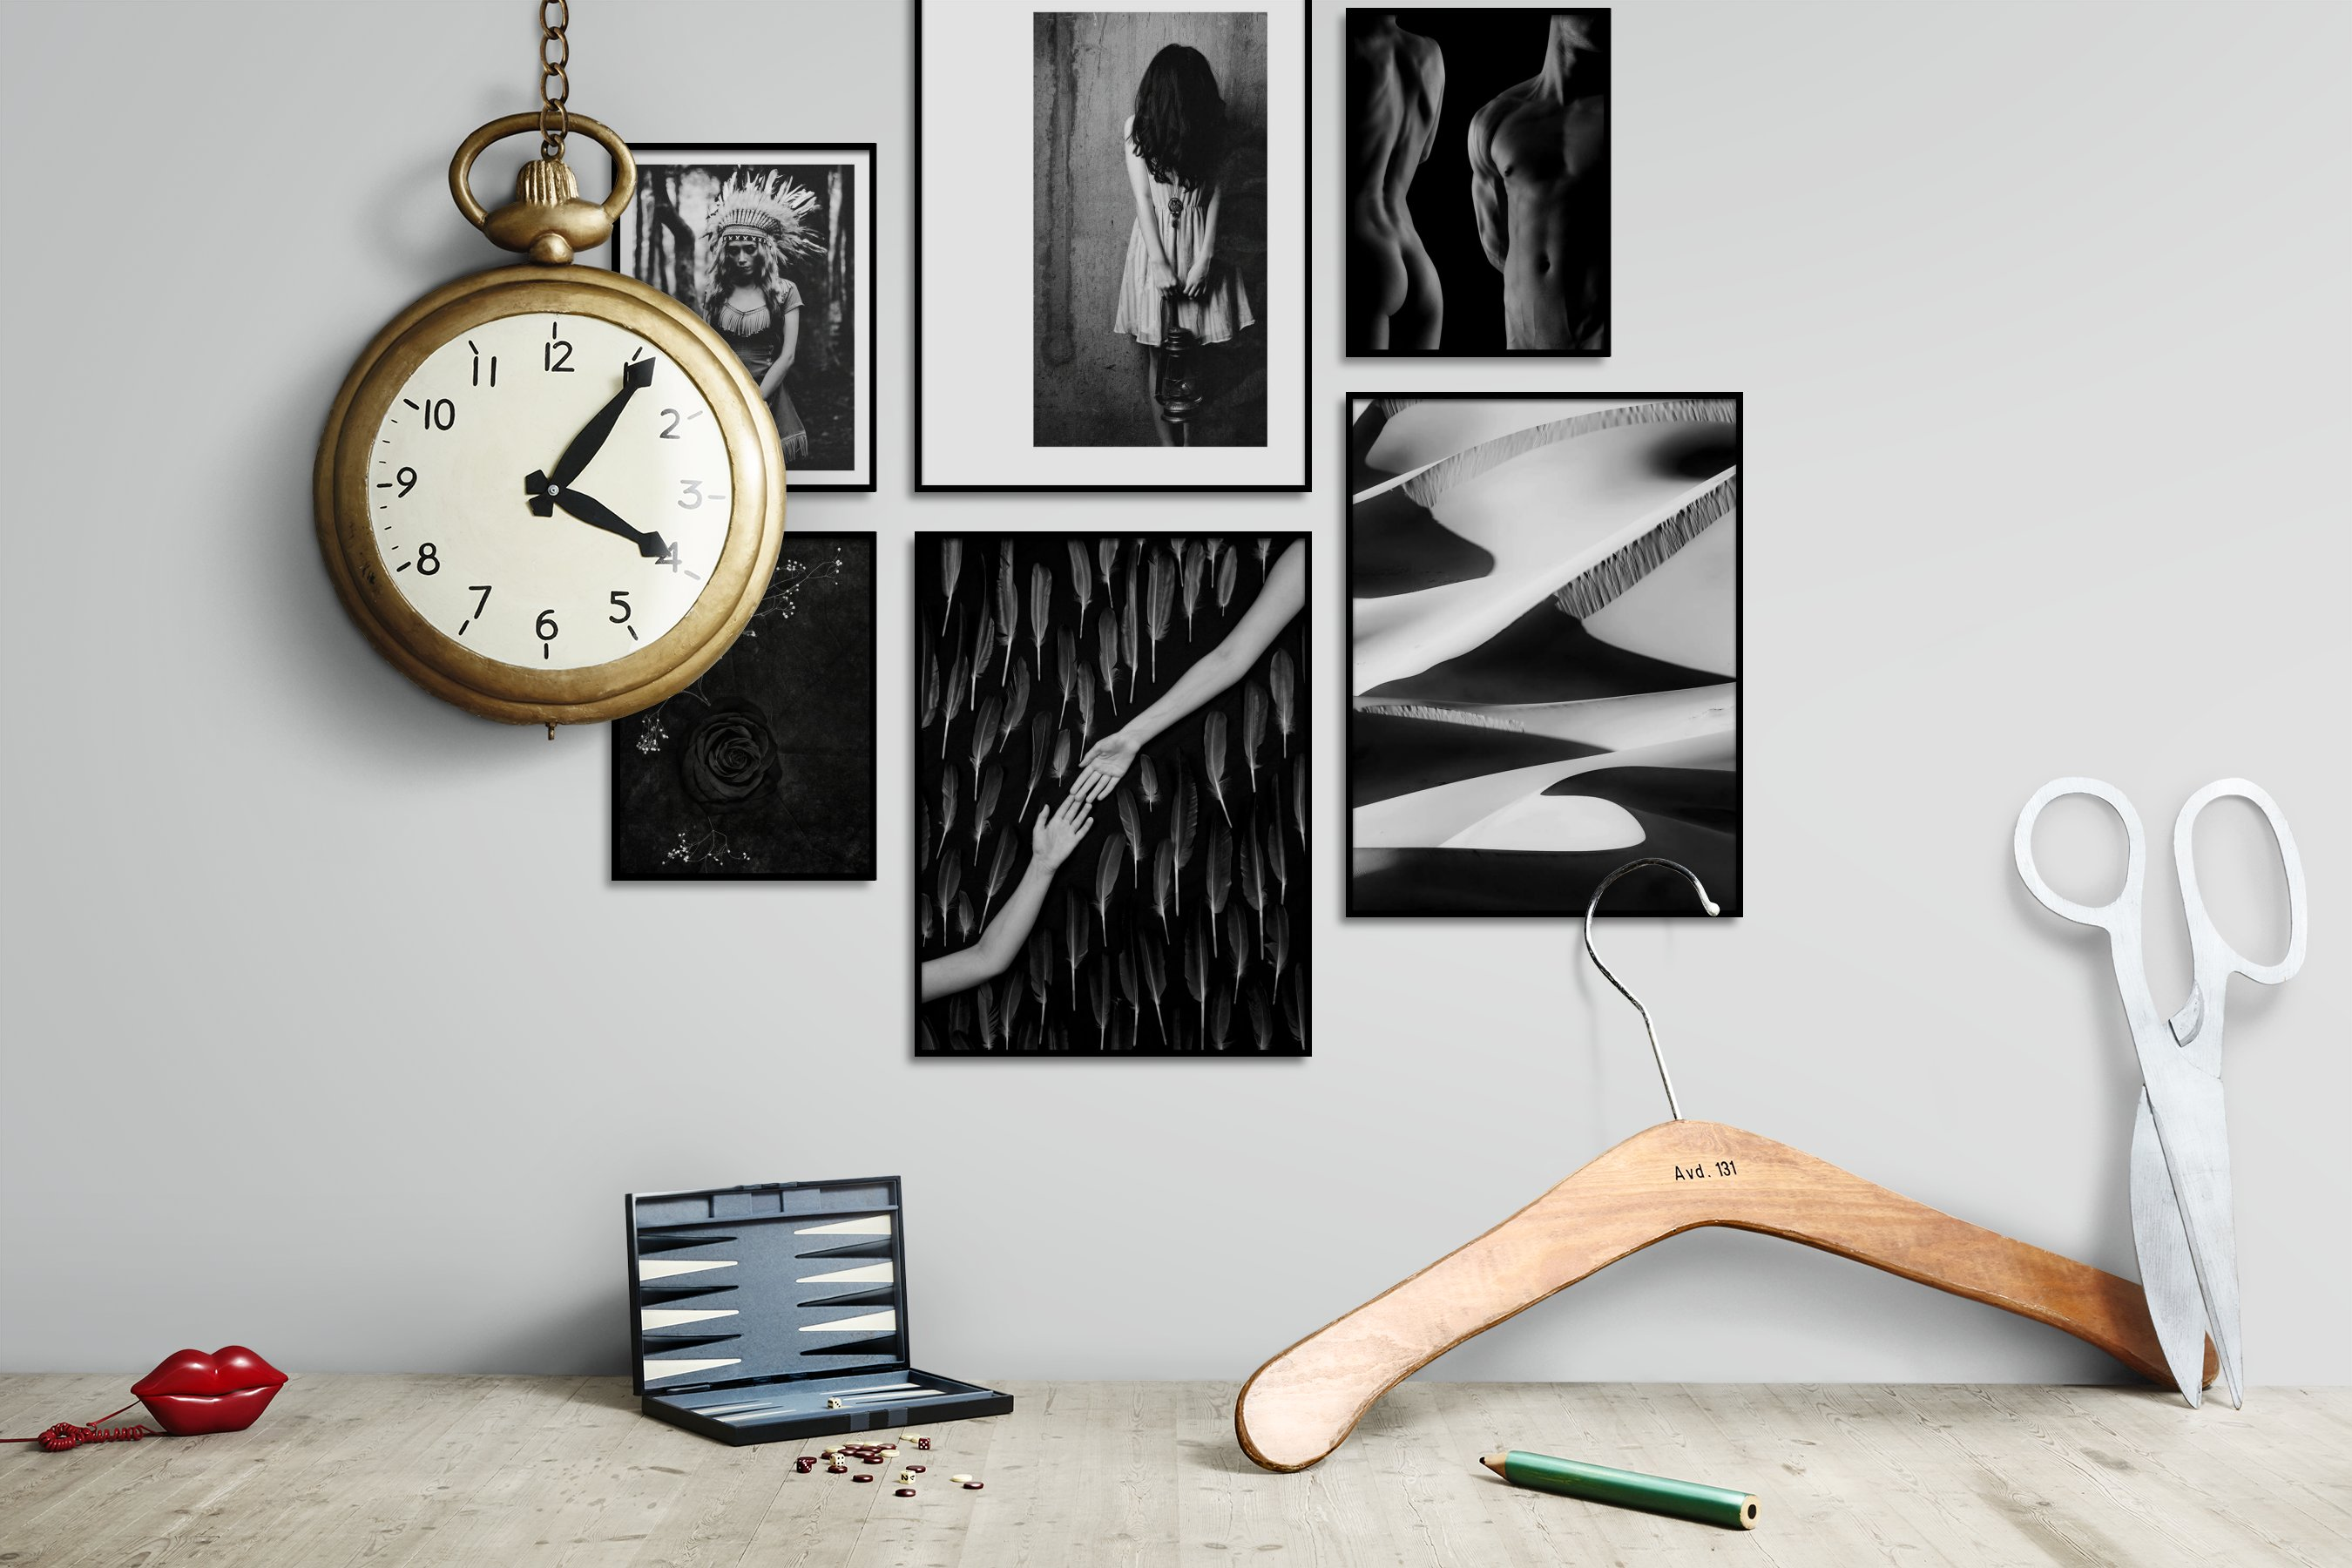 Gallery wall idea with six framed pictures arranged on a wall depicting Fashion & Beauty, Black & White, Americana, Artsy, For the Moderate, Mindfulness, Dark Tones, For the Minimalist, and Nature